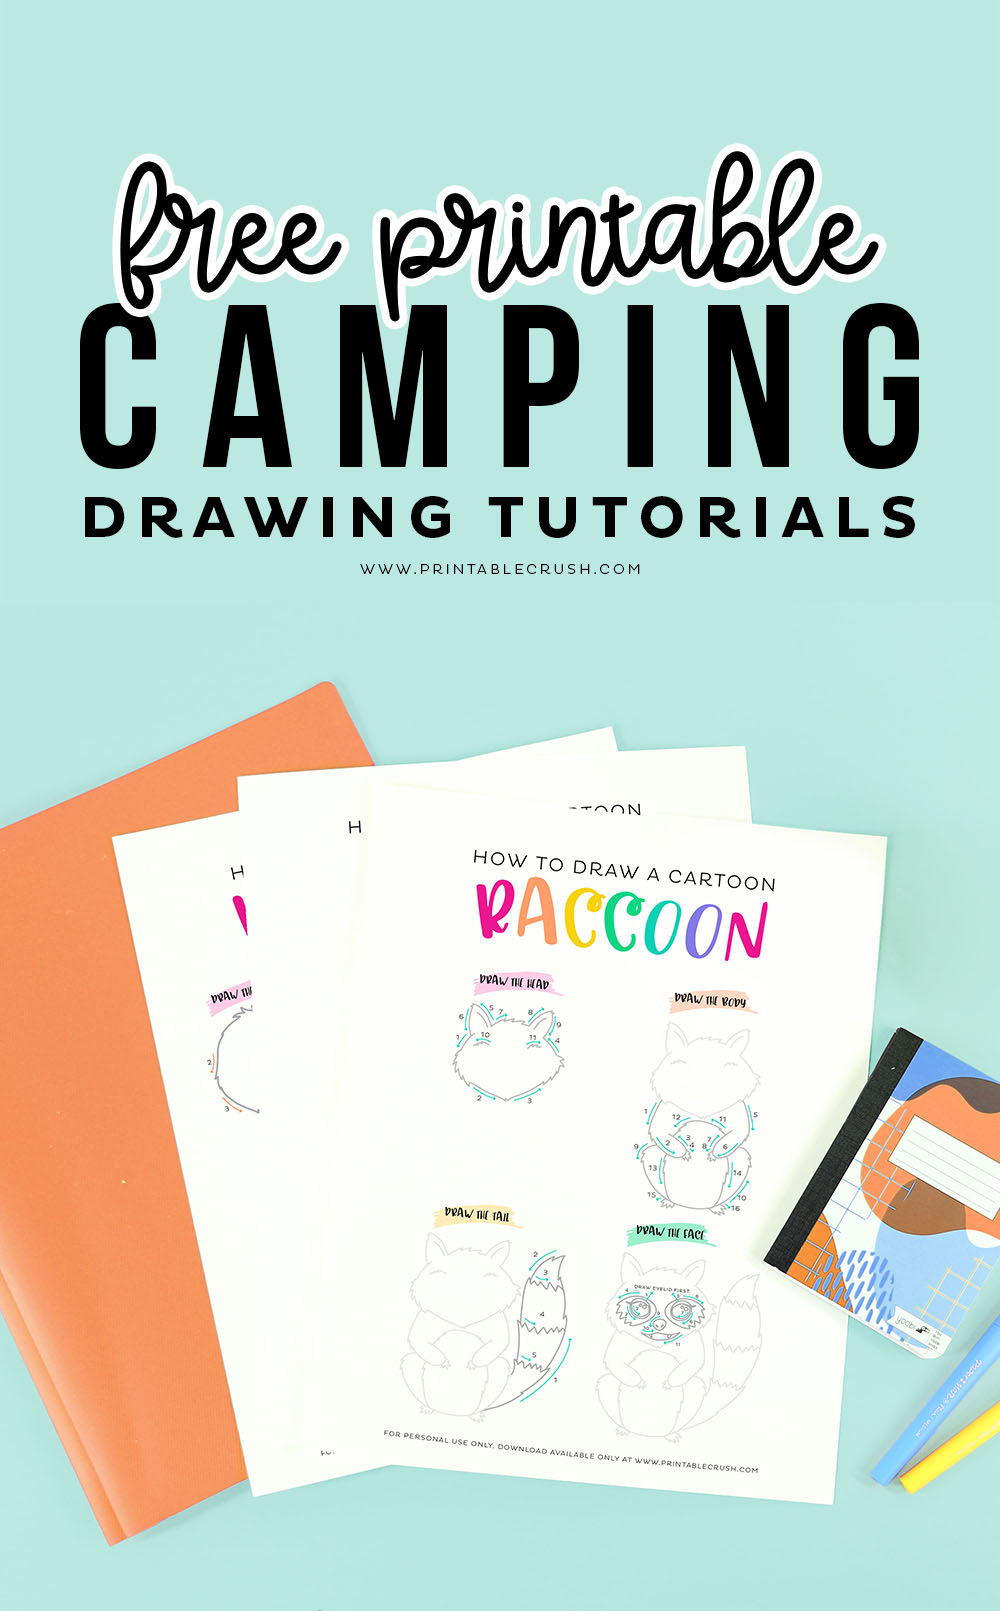 Free Camping Drawing Tutorial Printables via @printablecrush